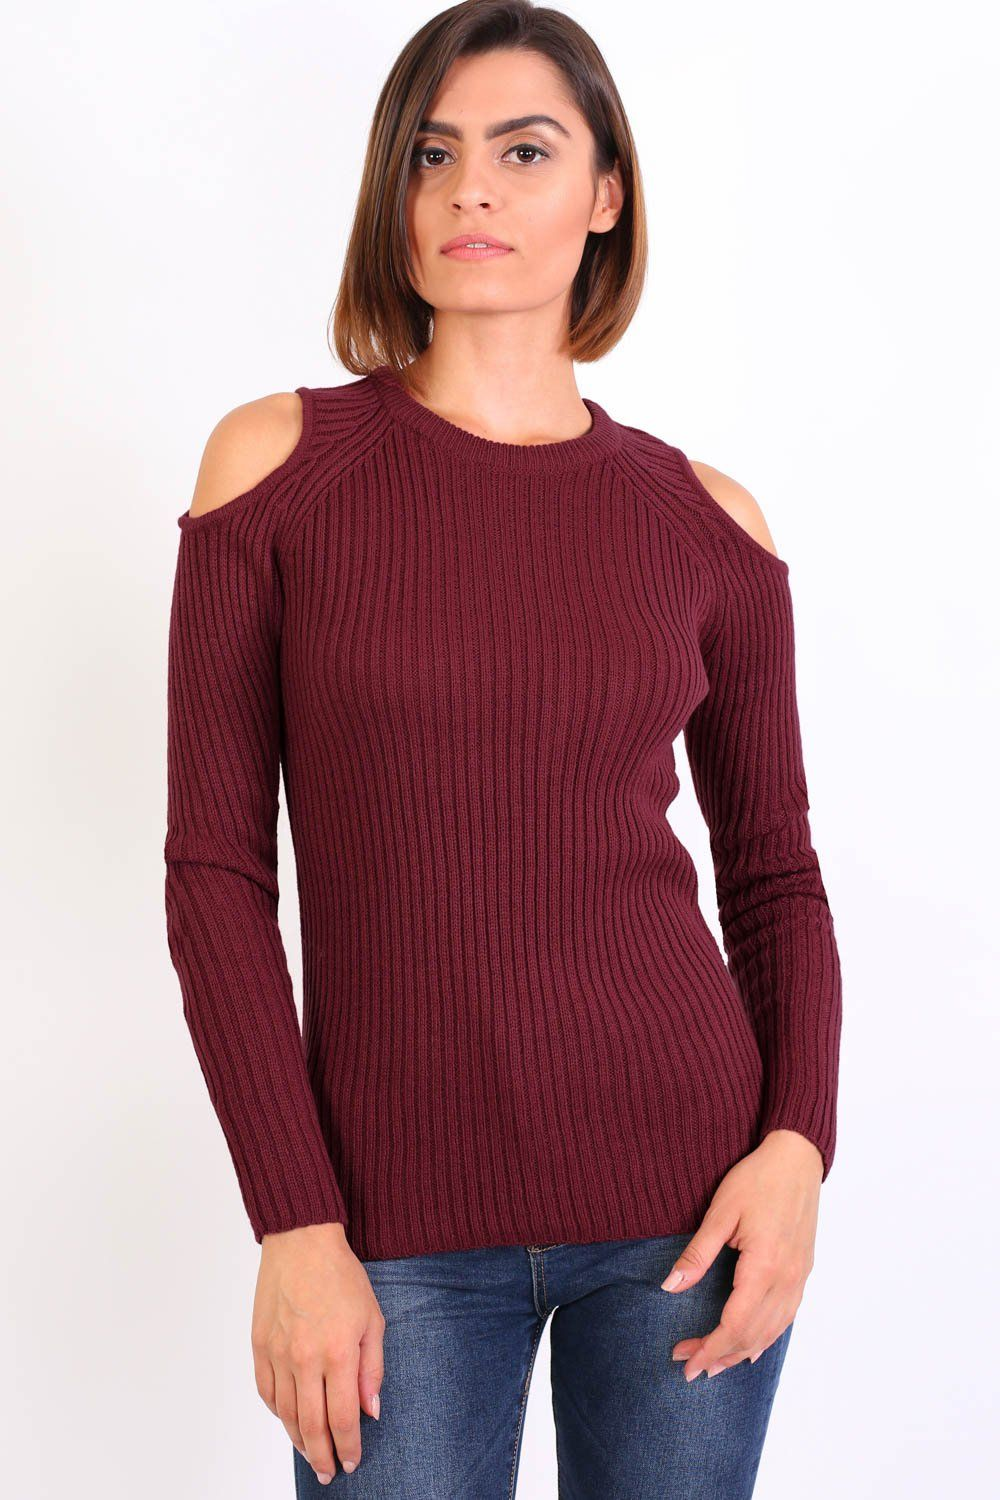 Cold Shoulder Knitted Ribbed Long Sleeve Jumper in Burgundy Red 1